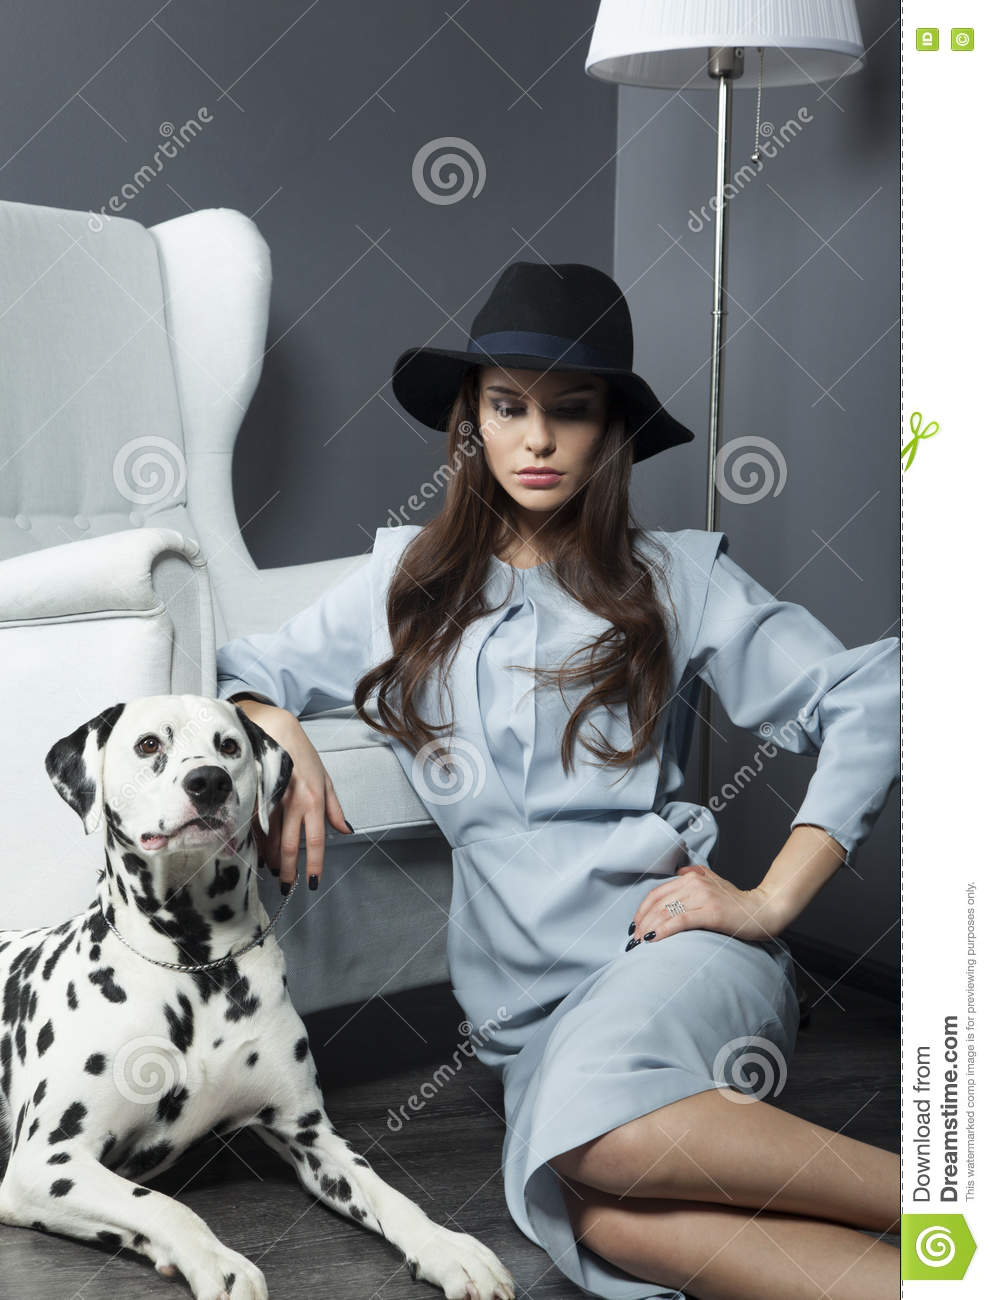 Beautiful Model In A Hat With Beautiful Makeup And A Dalmatian Dog Stock Photo Image Of Black Fashion 70320110